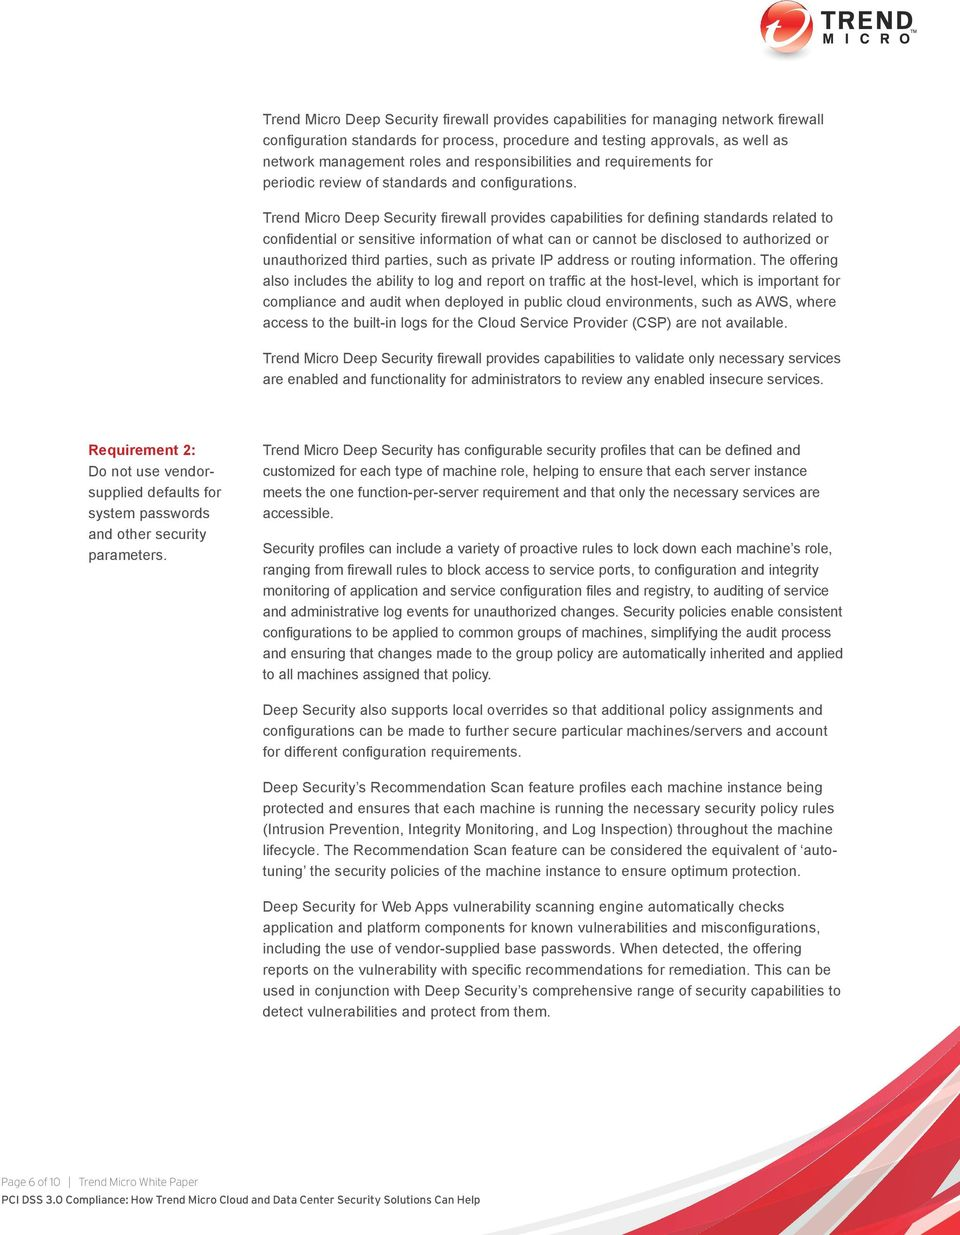 Trend Micro Deep Security firewall provides capabilities for defining standards related to confidential or sensitive information of what can or cannot be disclosed to authorized or unauthorized third